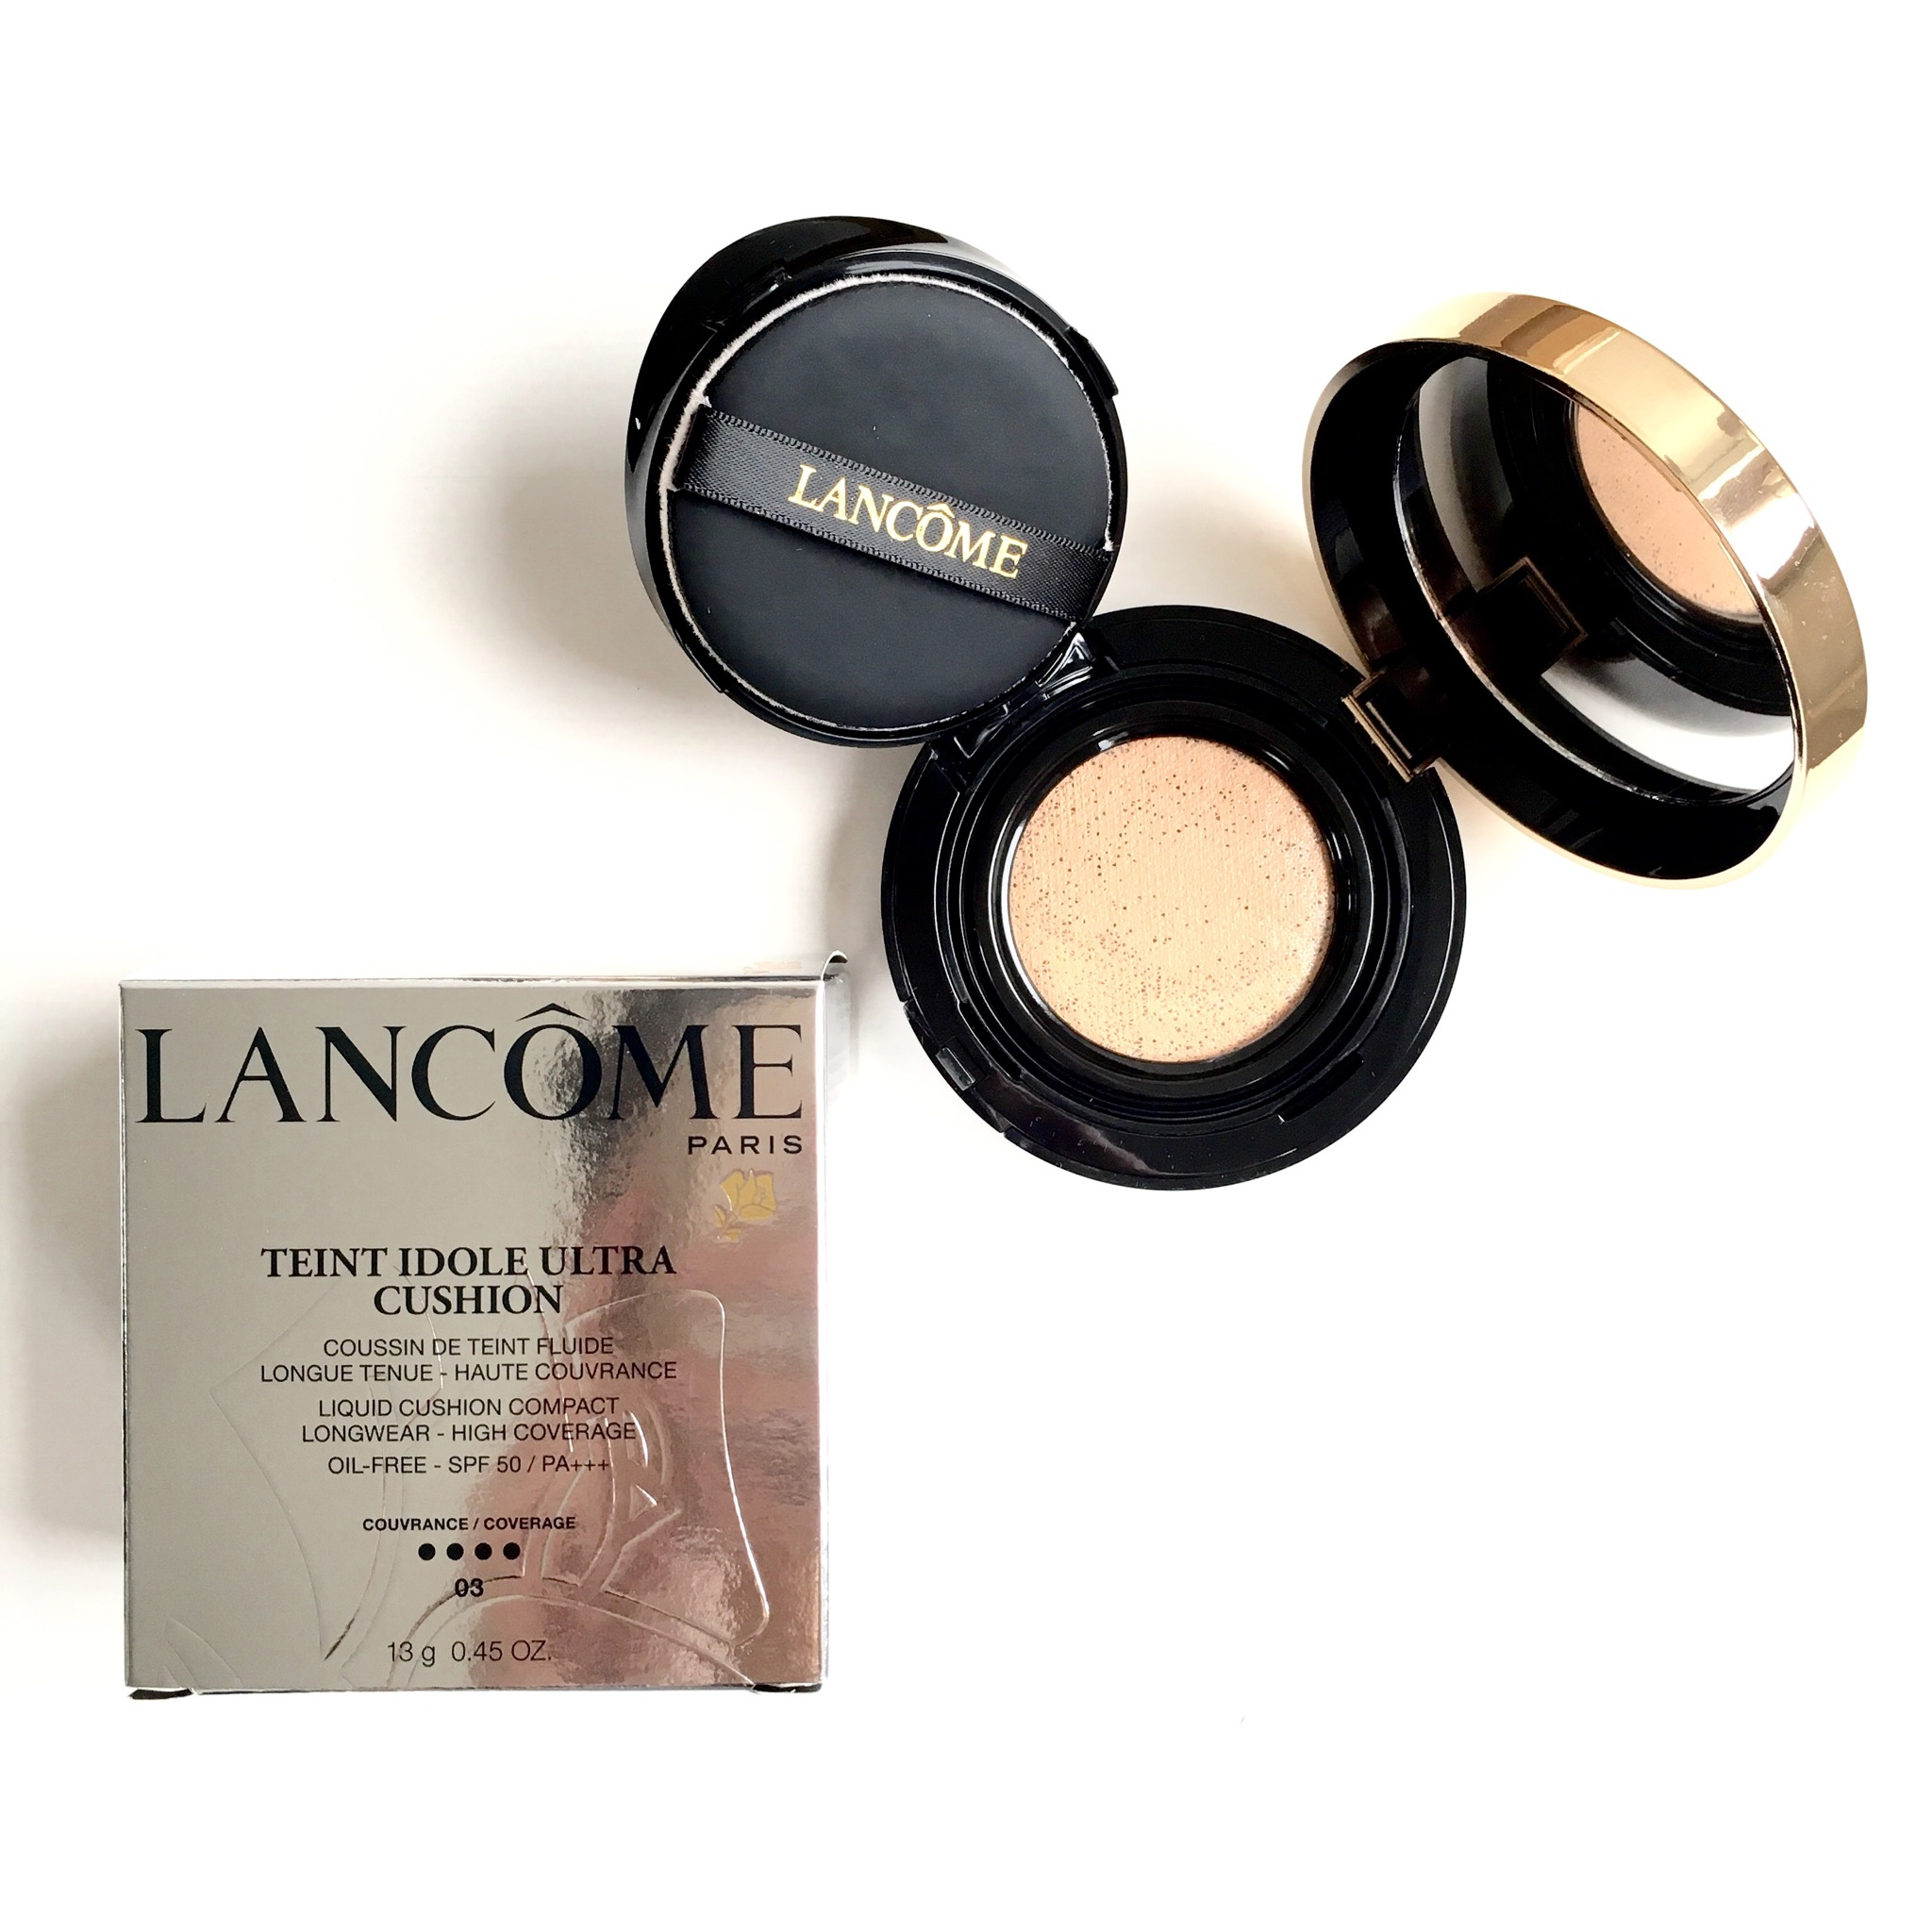 Produkttest: Lancôme Make-Up Set